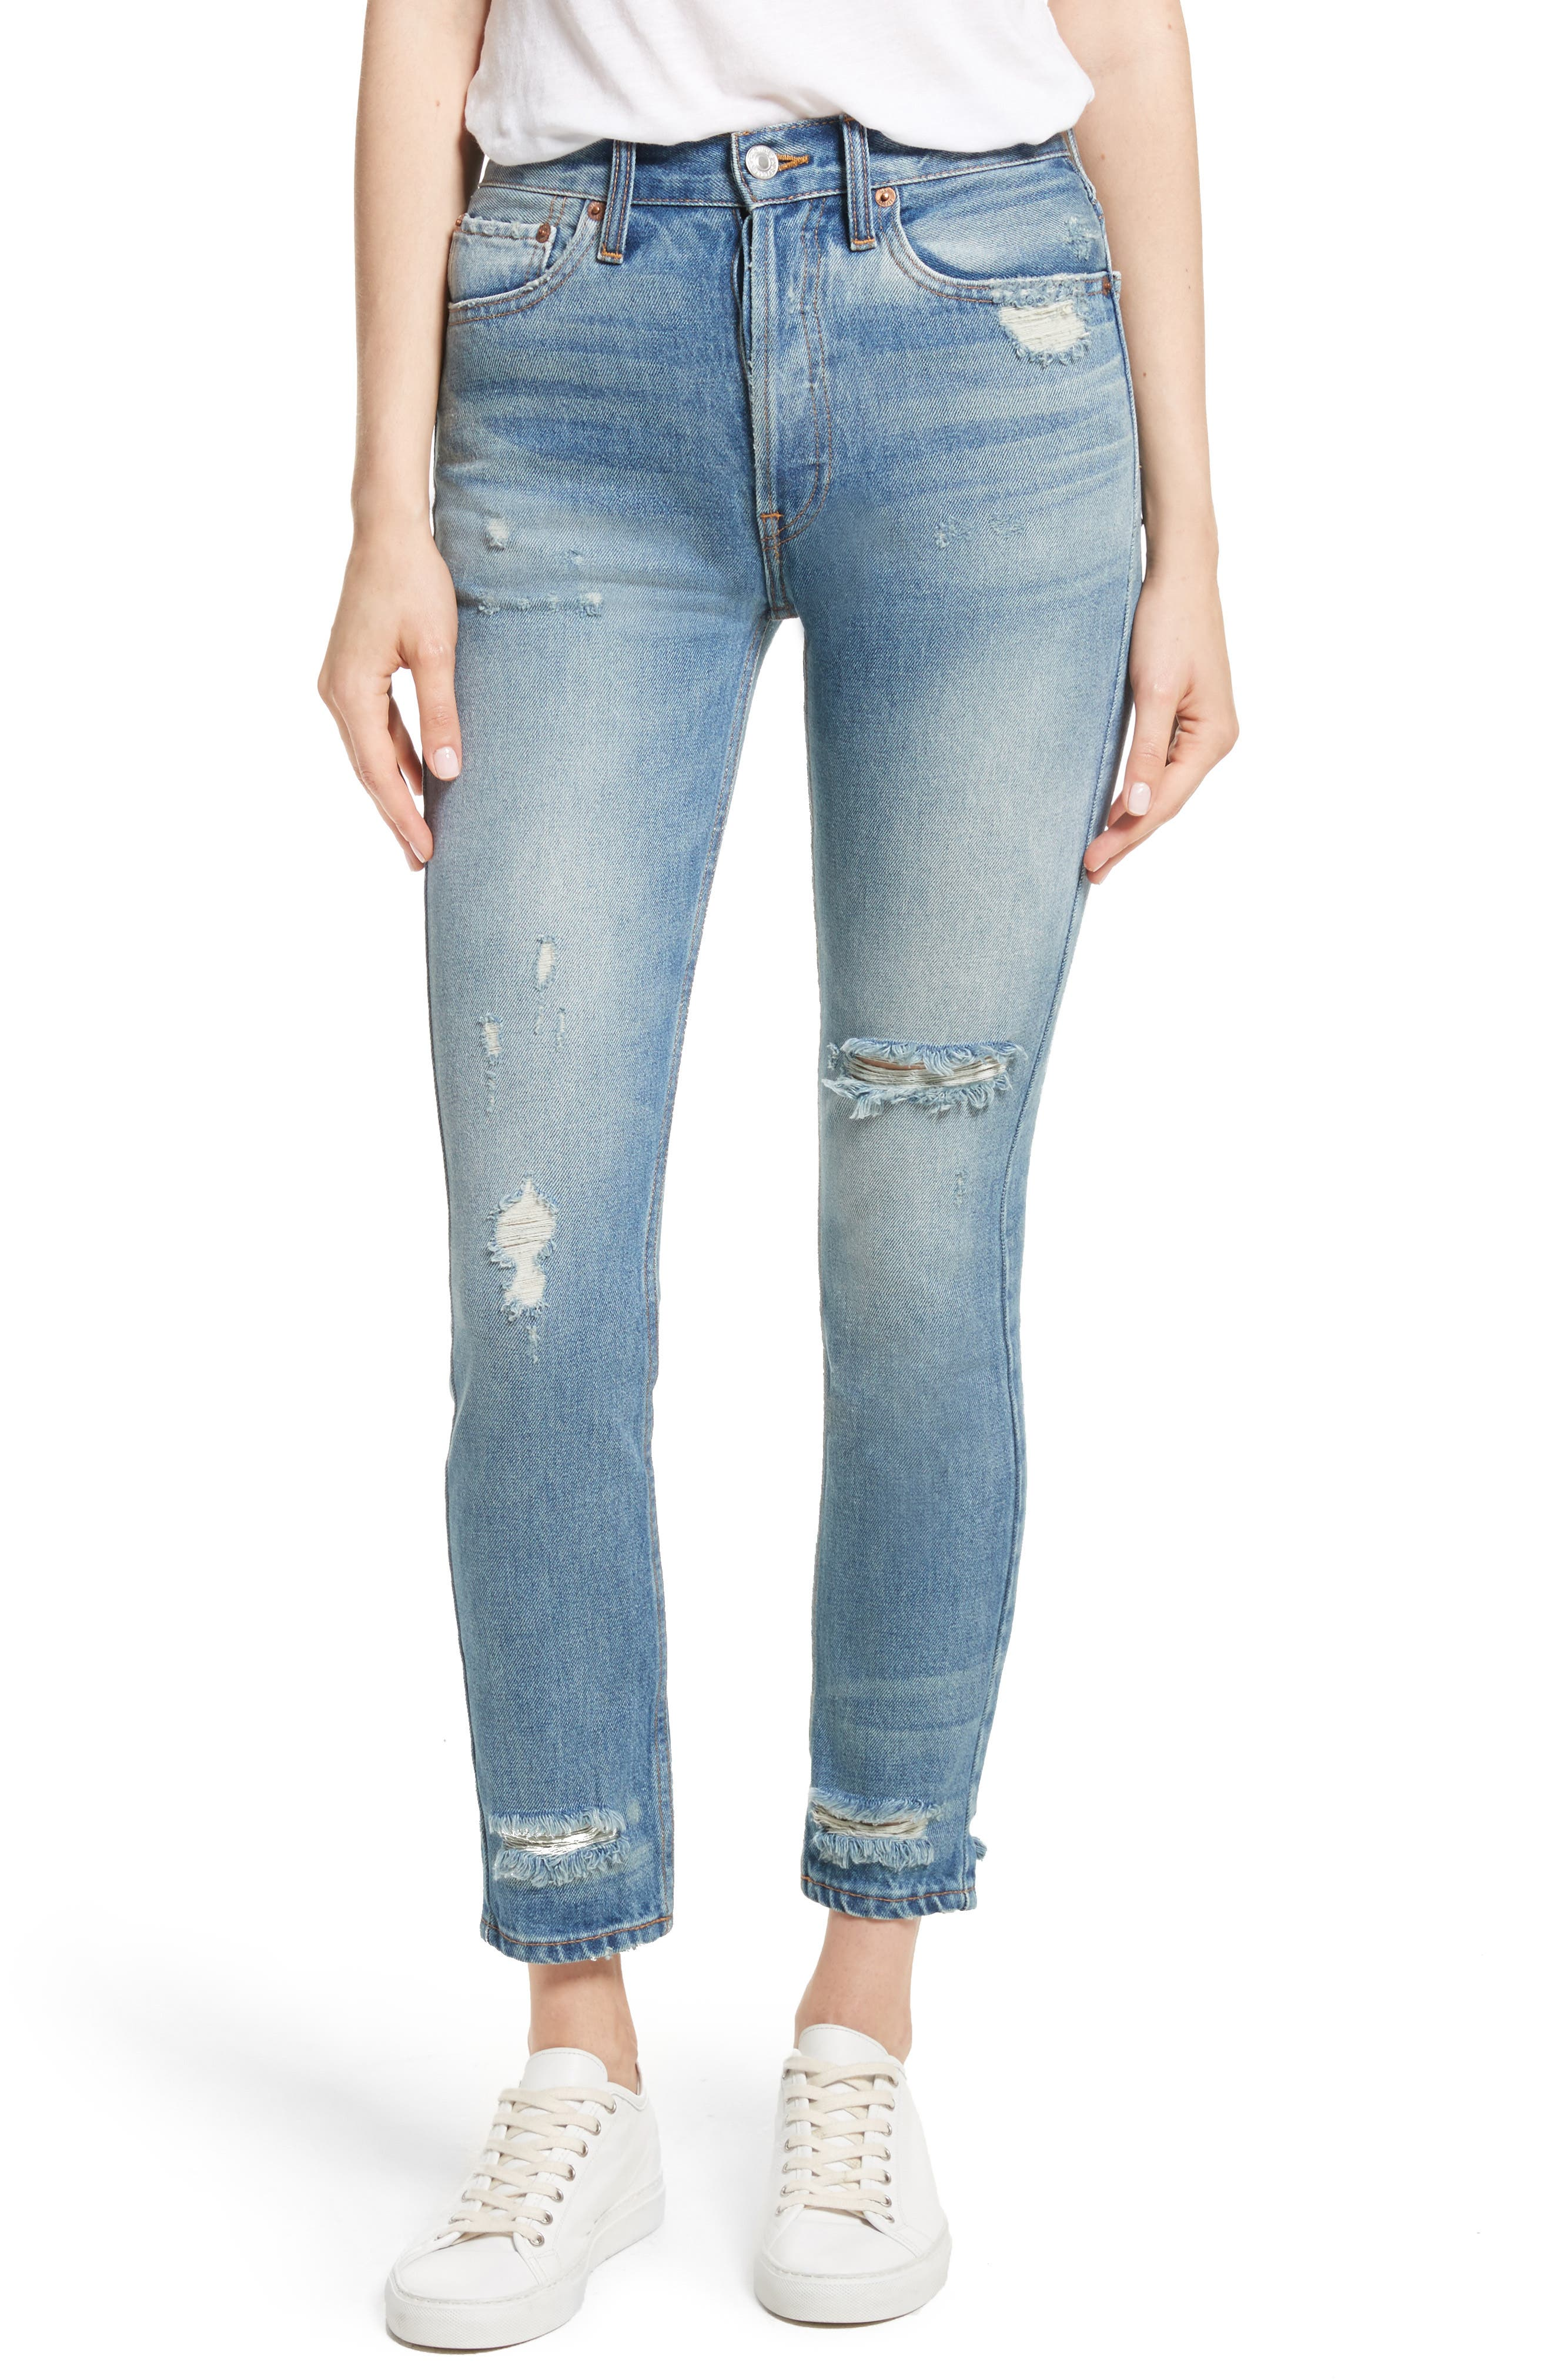 Alternate Image 1 Selected - Re/Done Originals High Waist Jeans